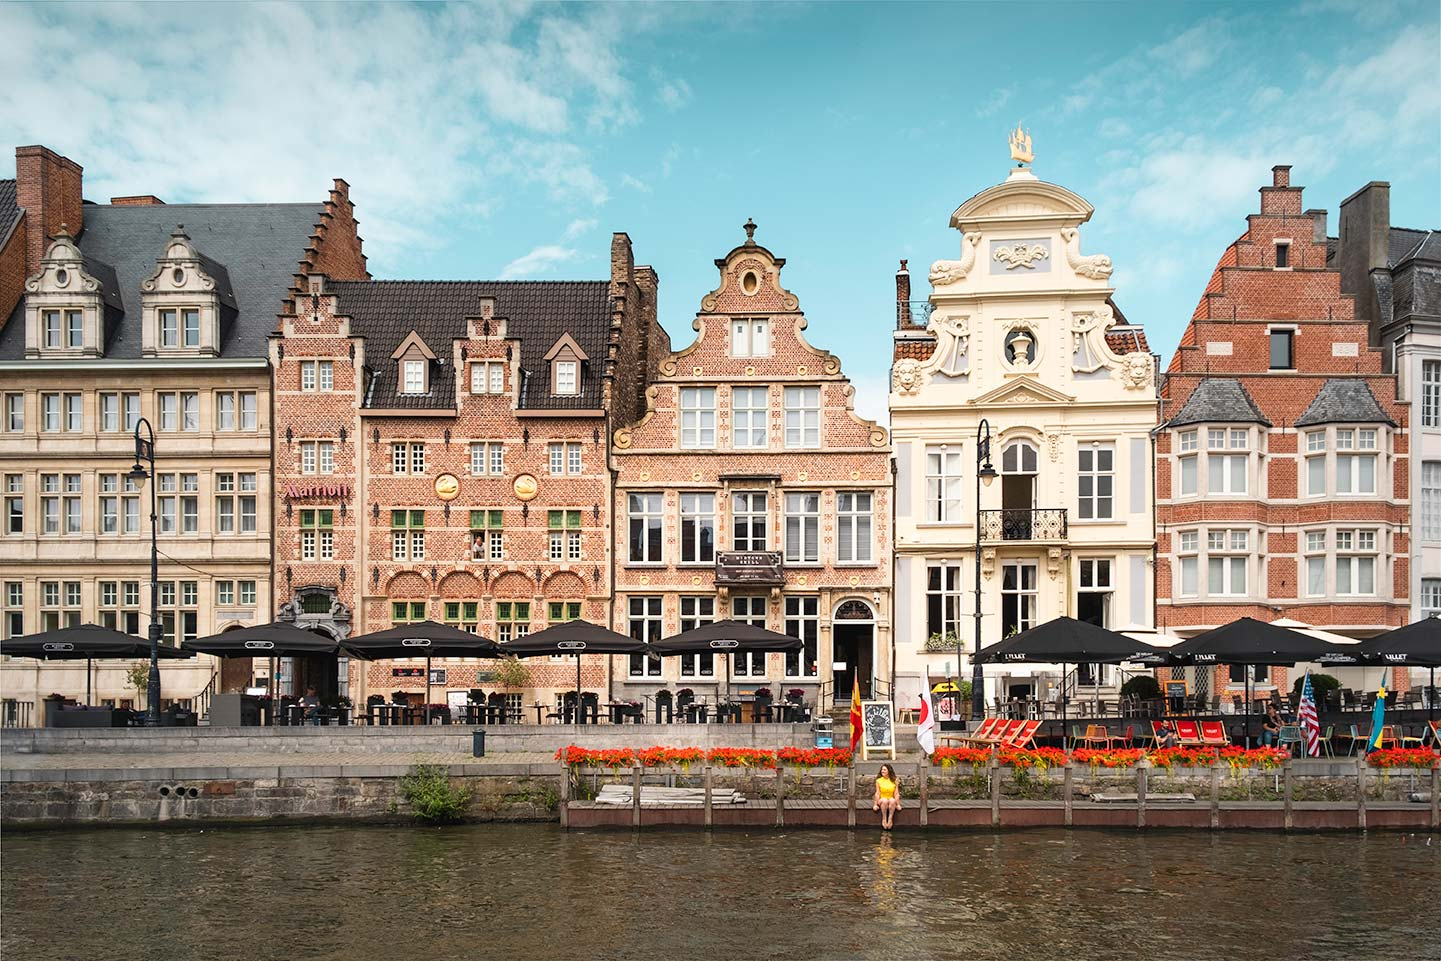 Ghent Day Trip Itinerary: Top 10 Things to See in Ghent in One Day